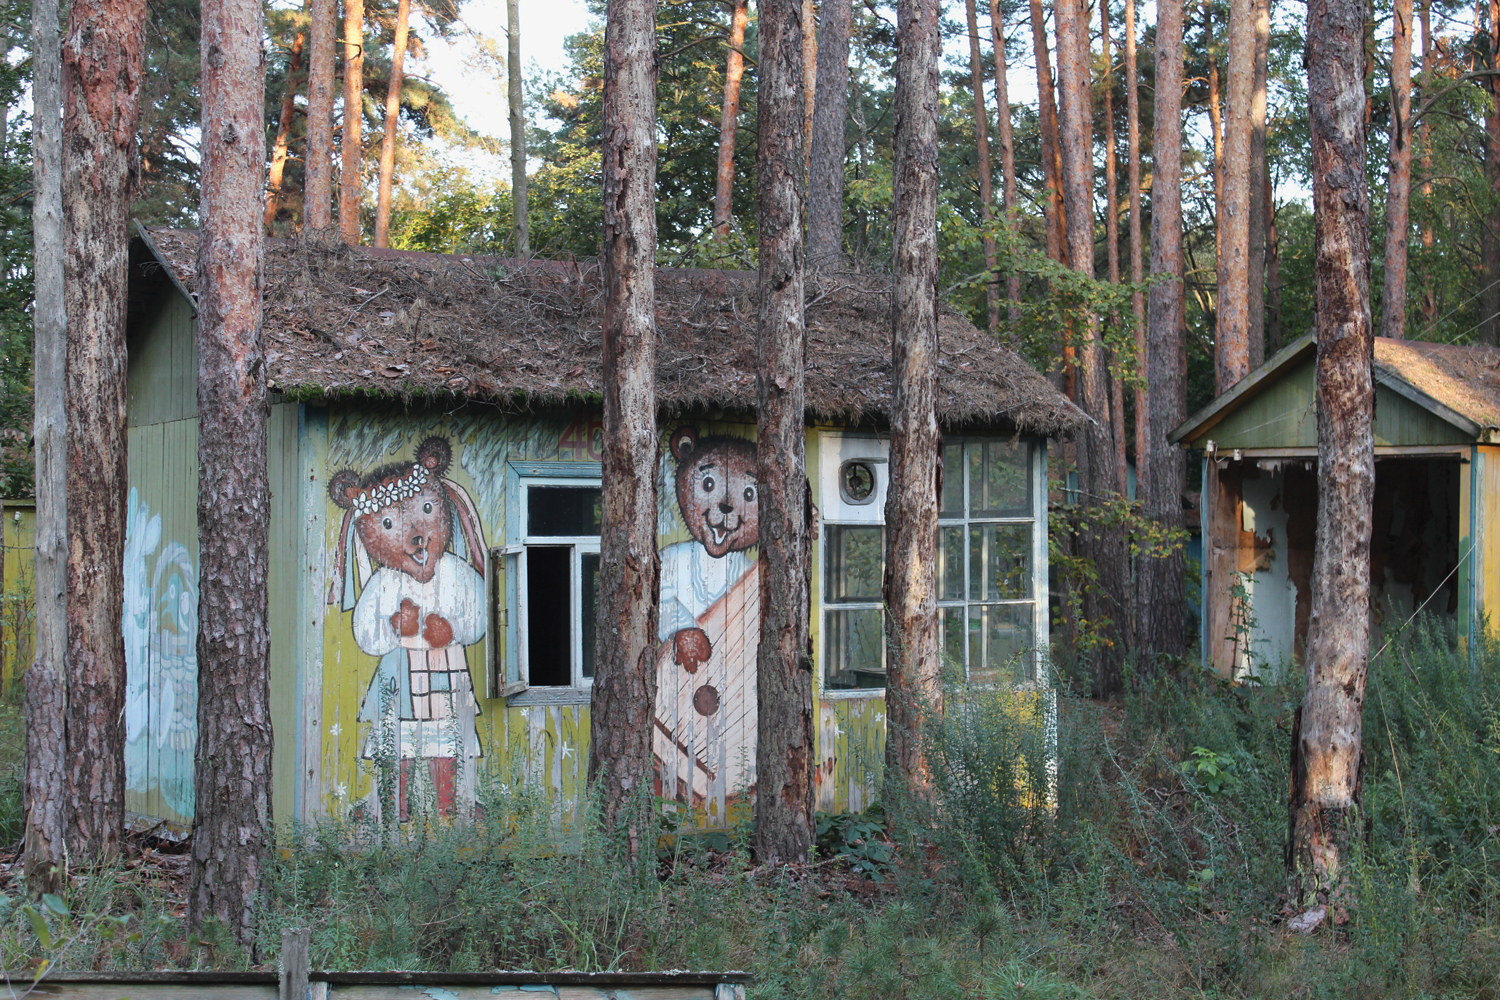 Izumrudniy' ('Emerald') Holiday Camp, near Chornobyl. Once a popular spot for summer holiday breaks, these rustic wooden chalets, painted with characters from cartoons and fairy tales, were completely destroyed by forest fires in April 2020. © Darmon Richter / FUEL Publishing